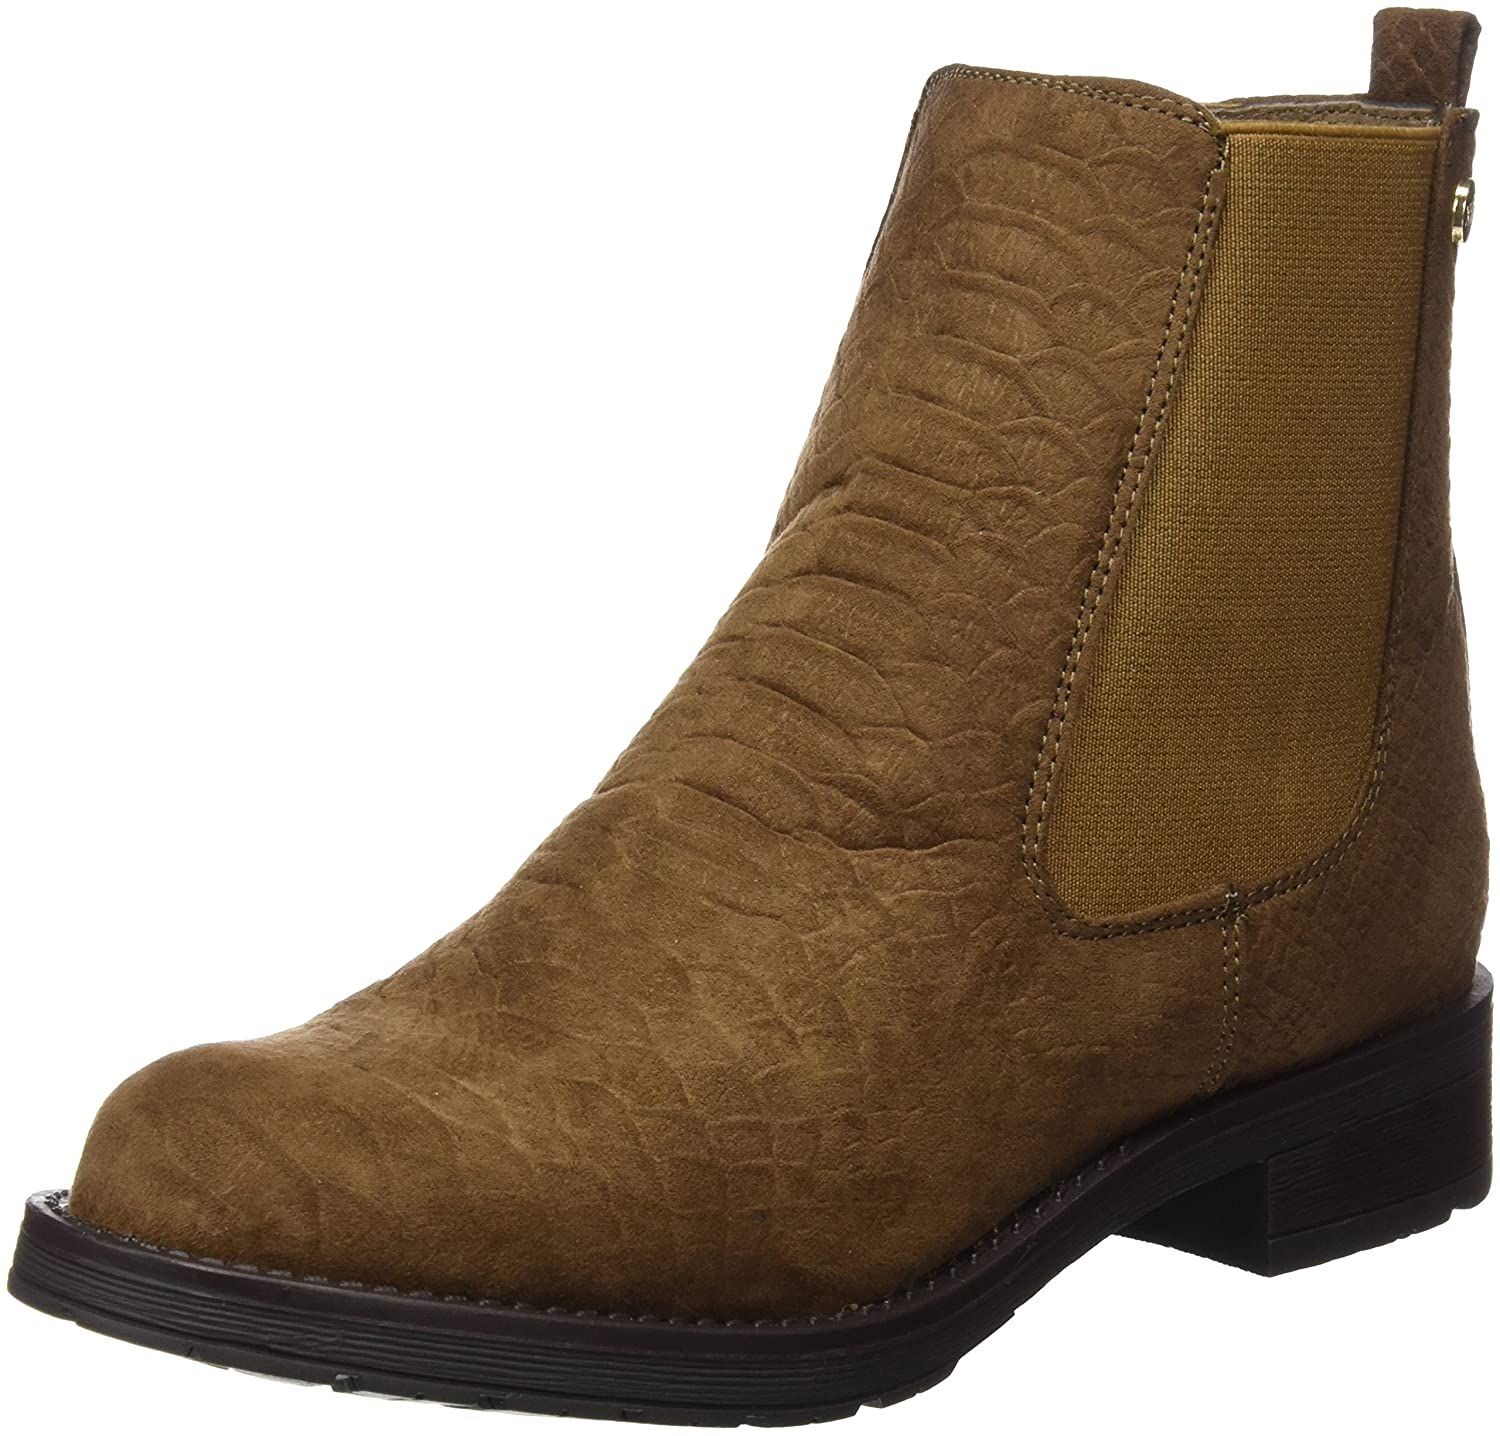 Xti Taupe, Botin SRA. Antelina Chelsea Taupe, Bottes Chelsea Femme Femme Taupe dc84899 - fast-weightloss-diet.space